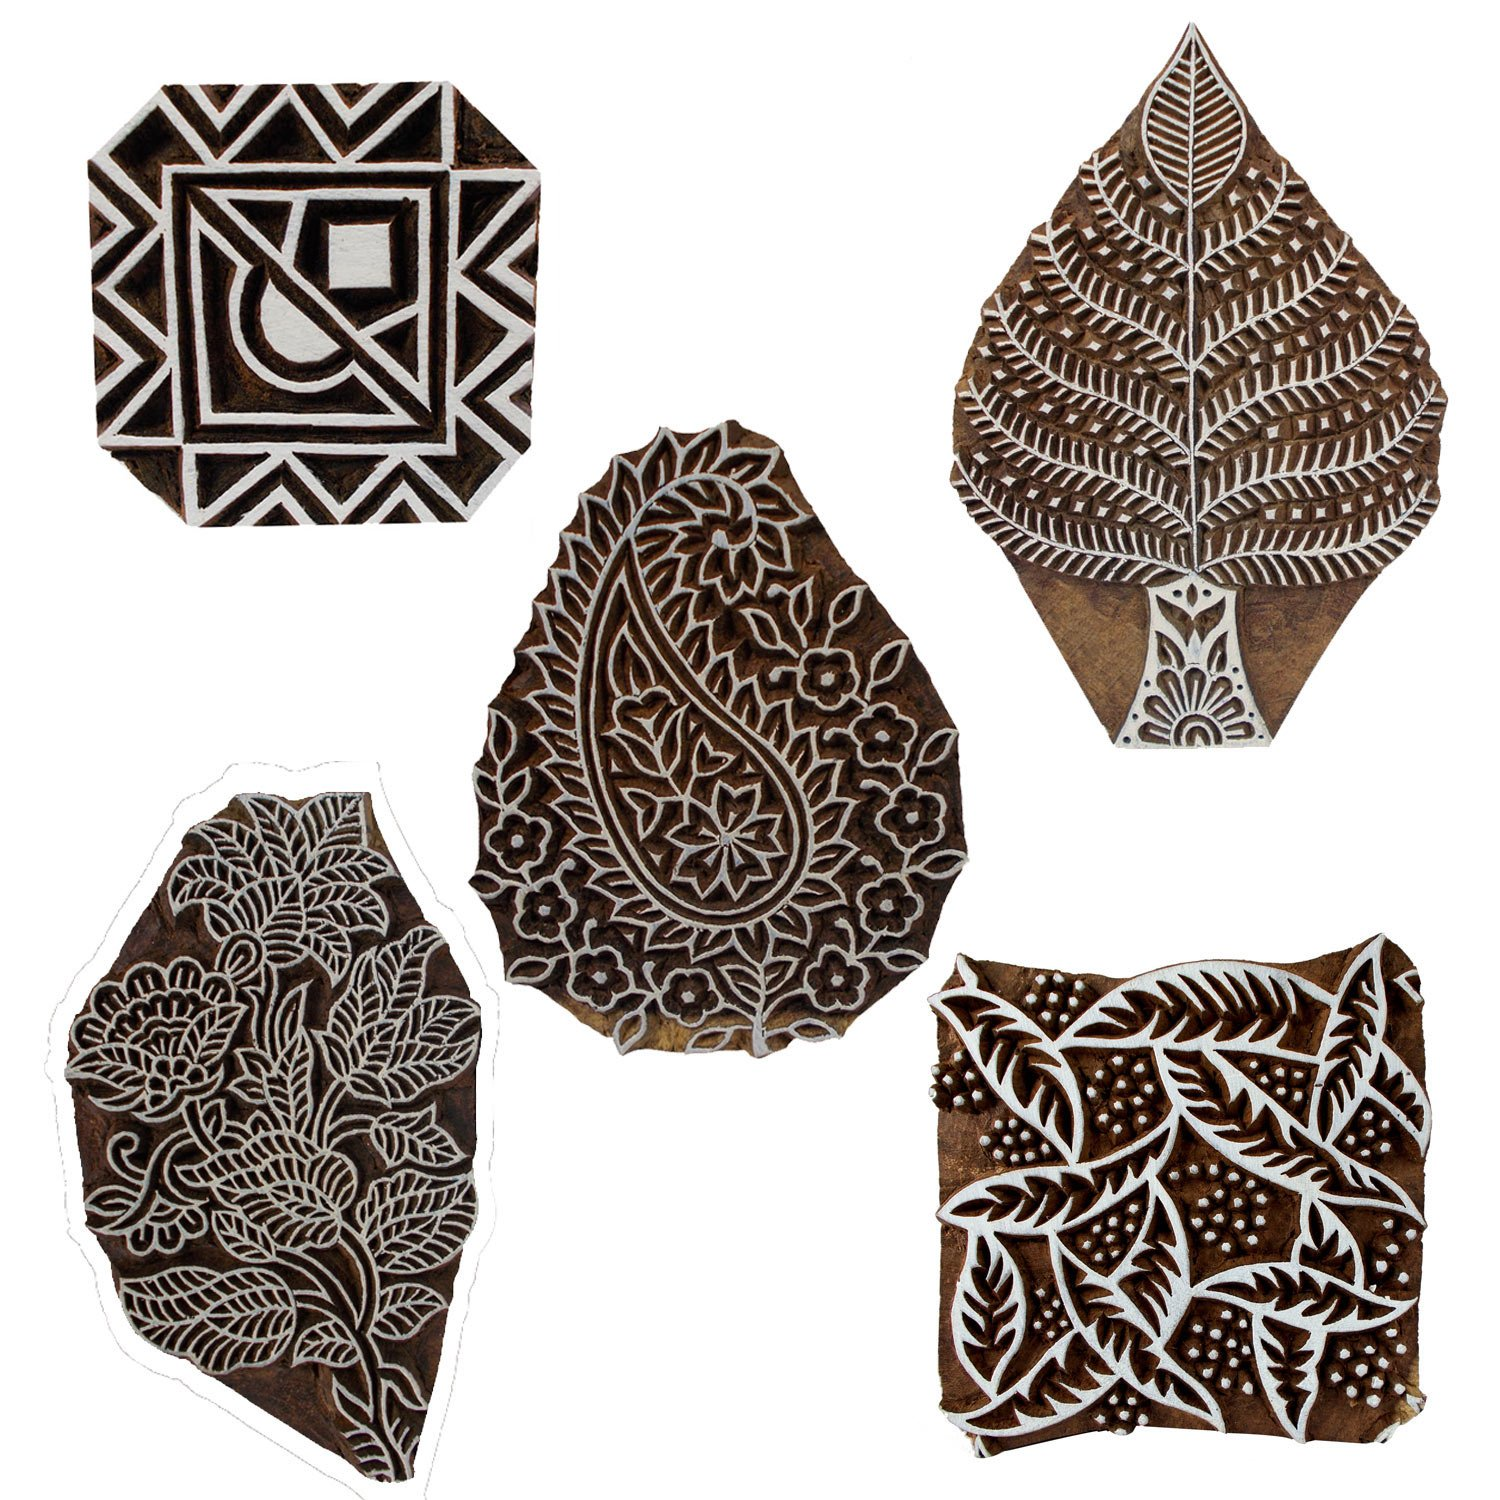 Bunch of 5 Wooden Textile Handmade Floral Paisley Tree Leaf Printing Textile Block Clay Potter Craft Scrapbook Stamps